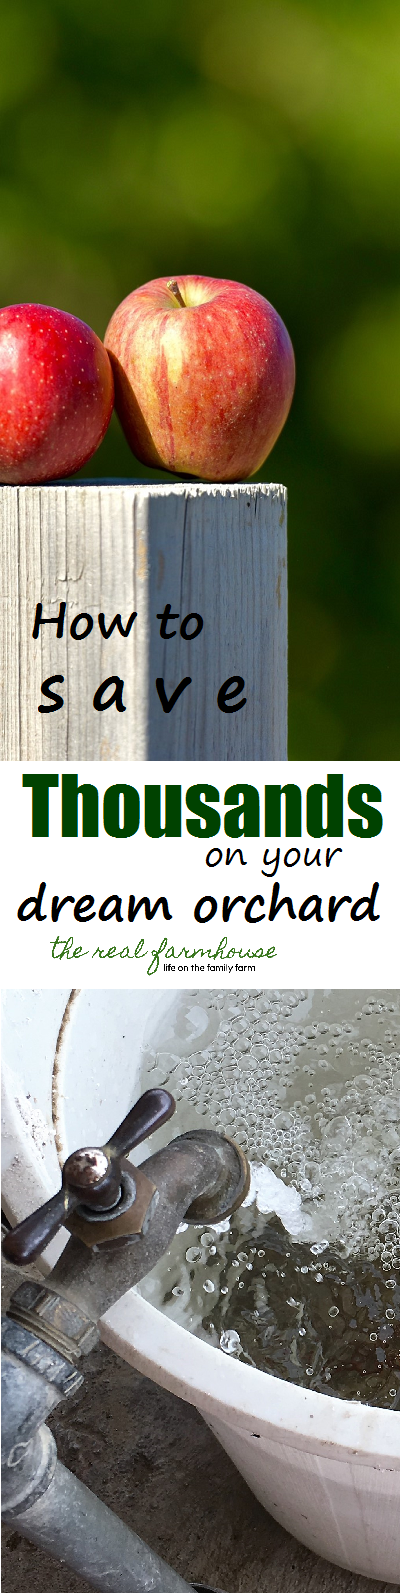 How to save thousands on your dream orchard. Don't wait! Planning ahead saves the big bucks.